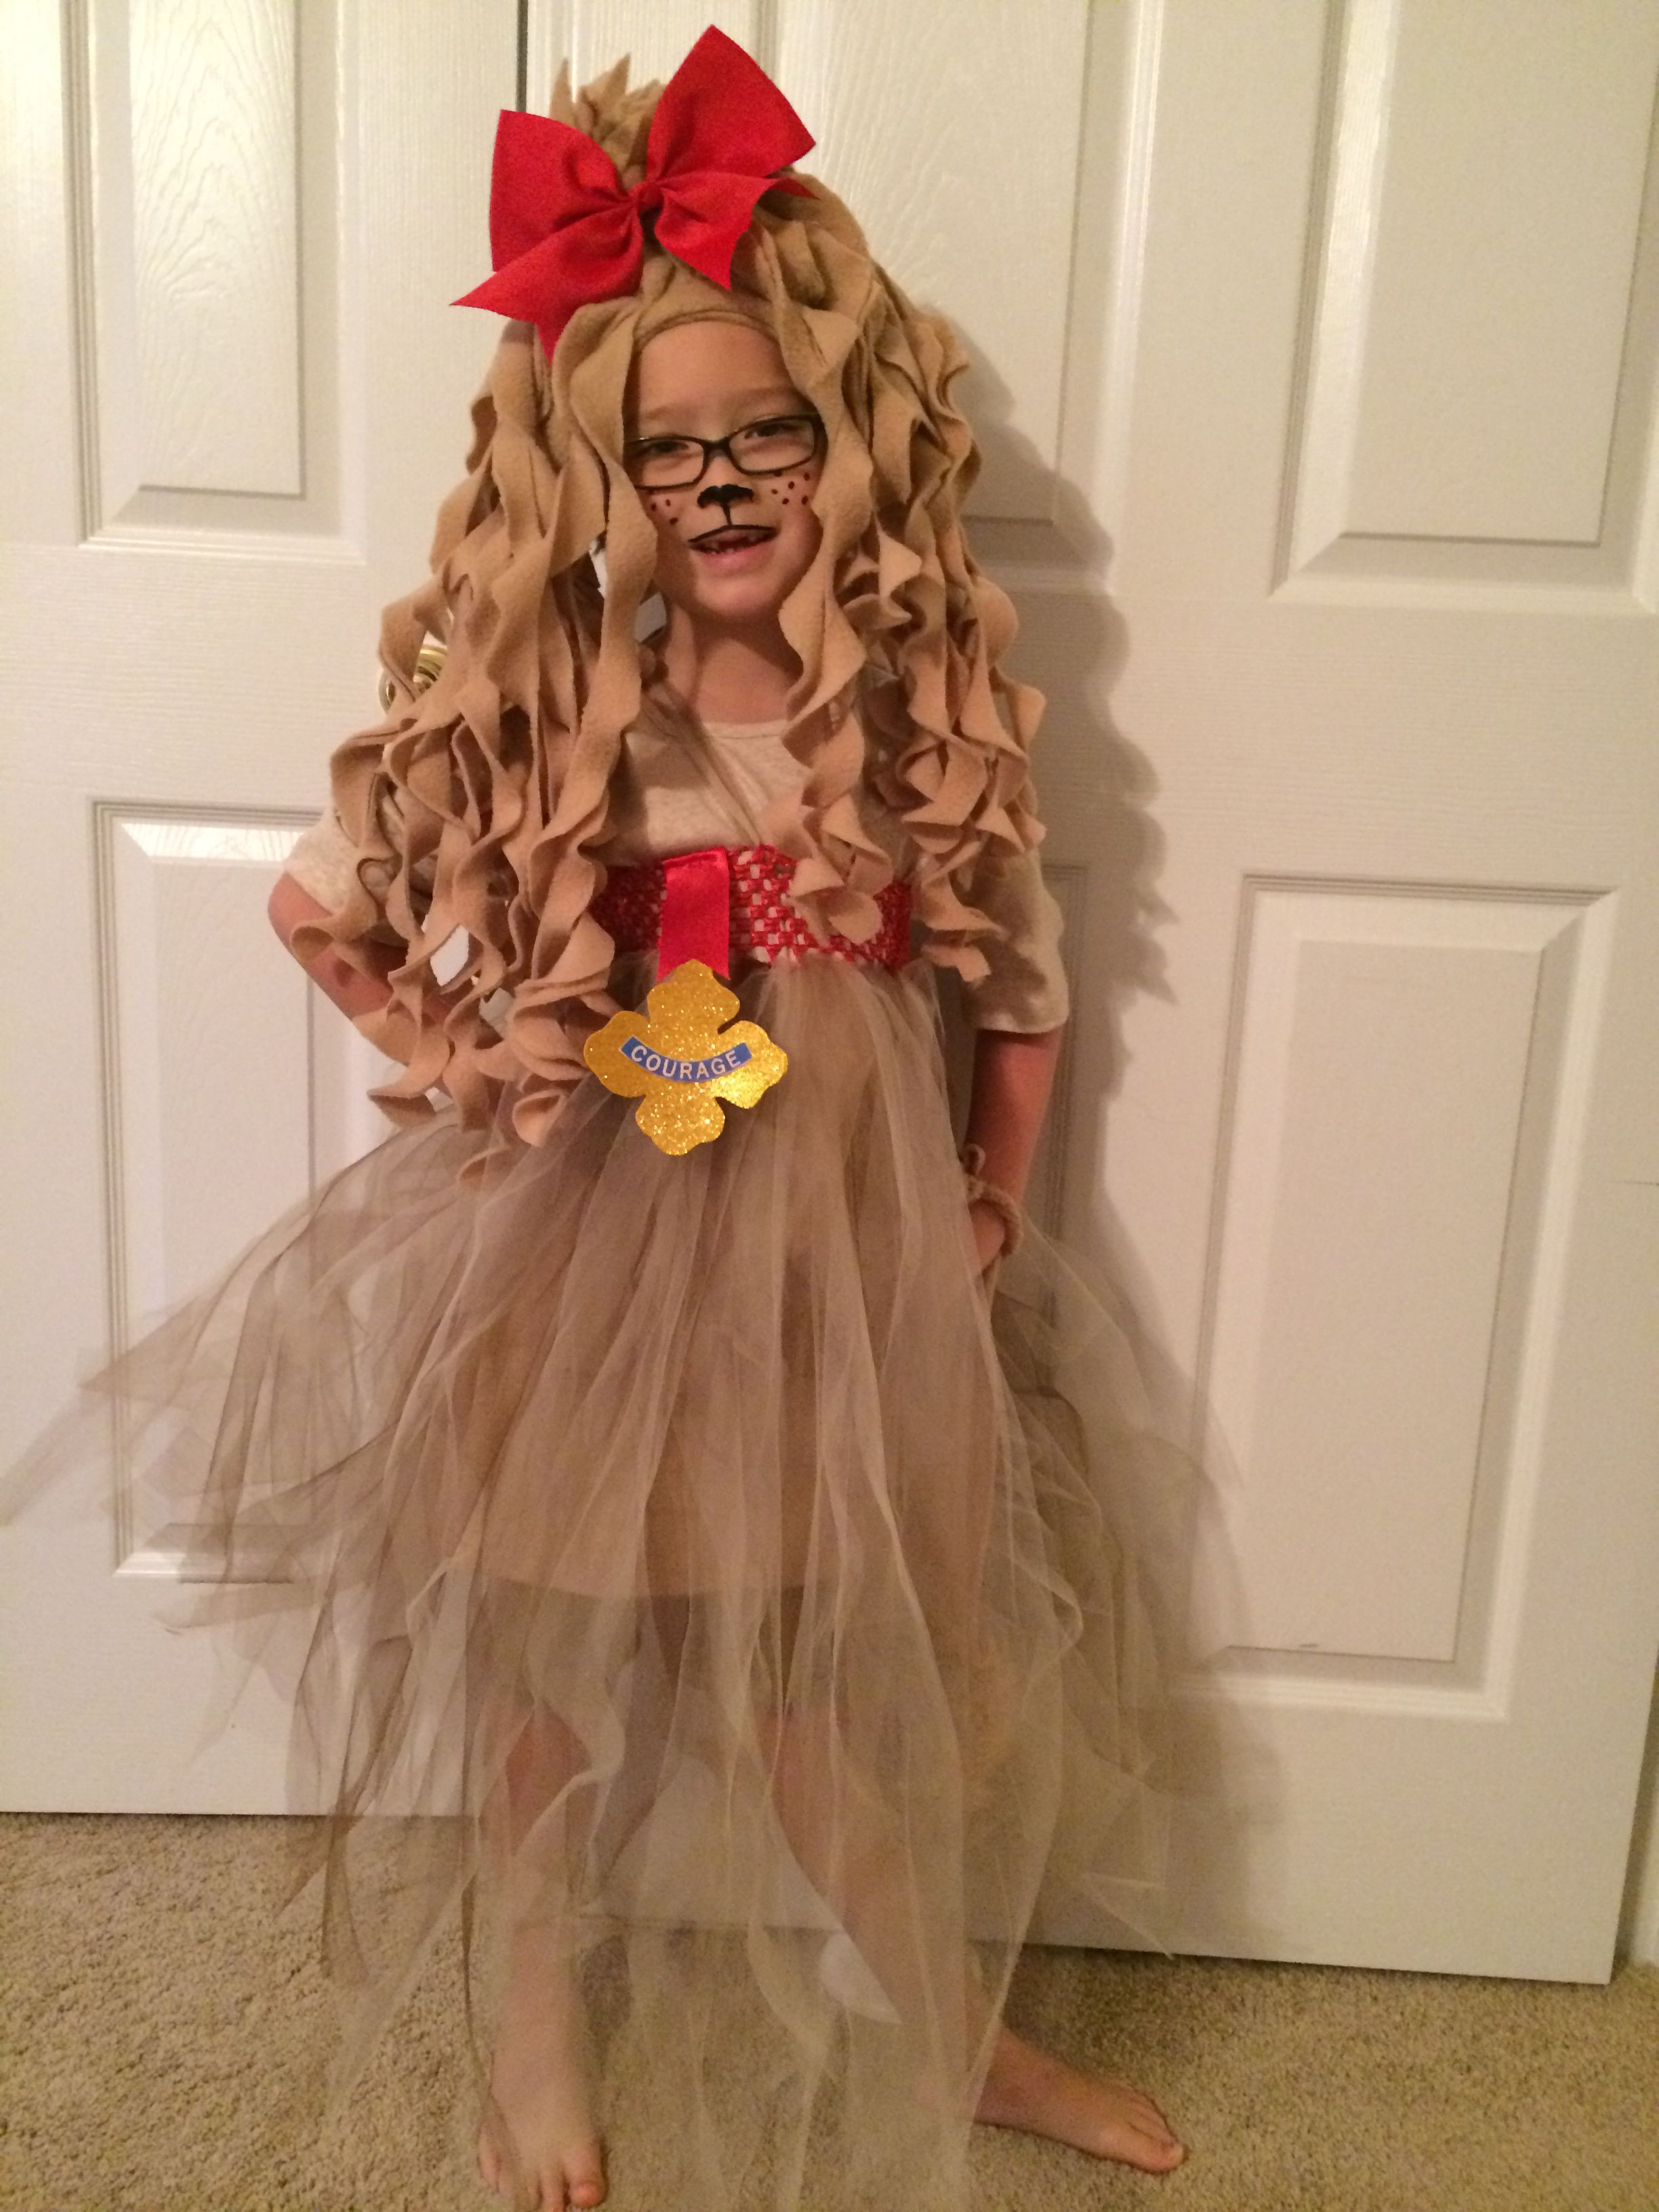 Best ideas about DIY Cowardly Lion Costume . Save or Pin Cowardly Lion costumes Now.